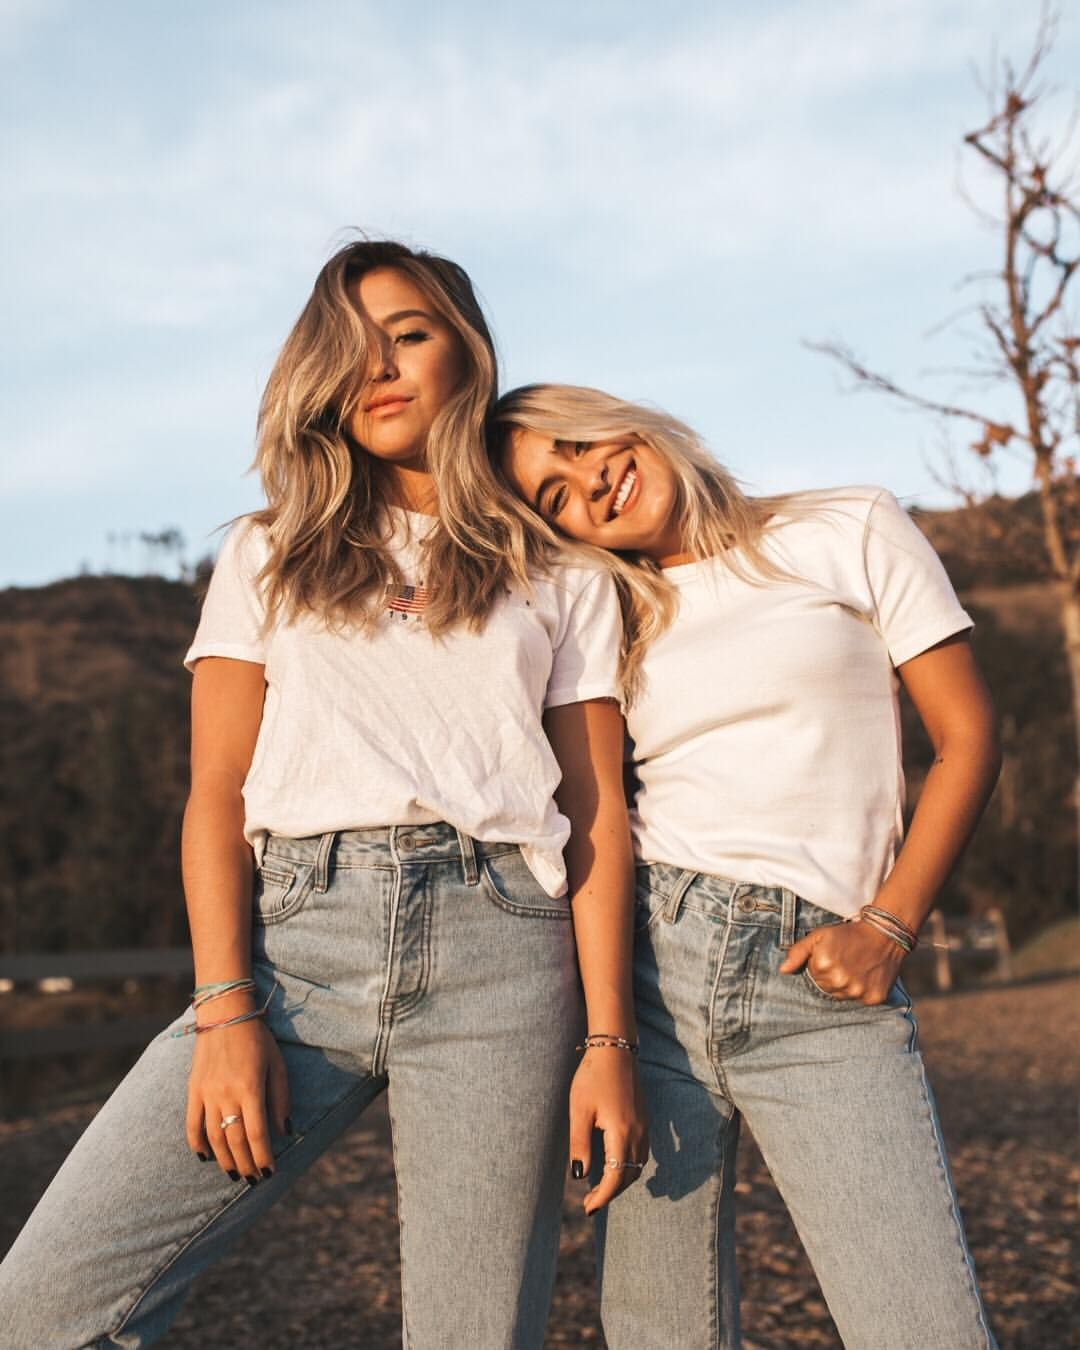 13 8k Likes 25 Comments Pura Vida Bracelets Puravidabracelets On Instagram Eat Drink A Friend Poses Photography Friend Photoshoot Sisters Photoshoot Sign in to check out what your friends, family & interests have been capturing & sharing around the world. friend poses photography